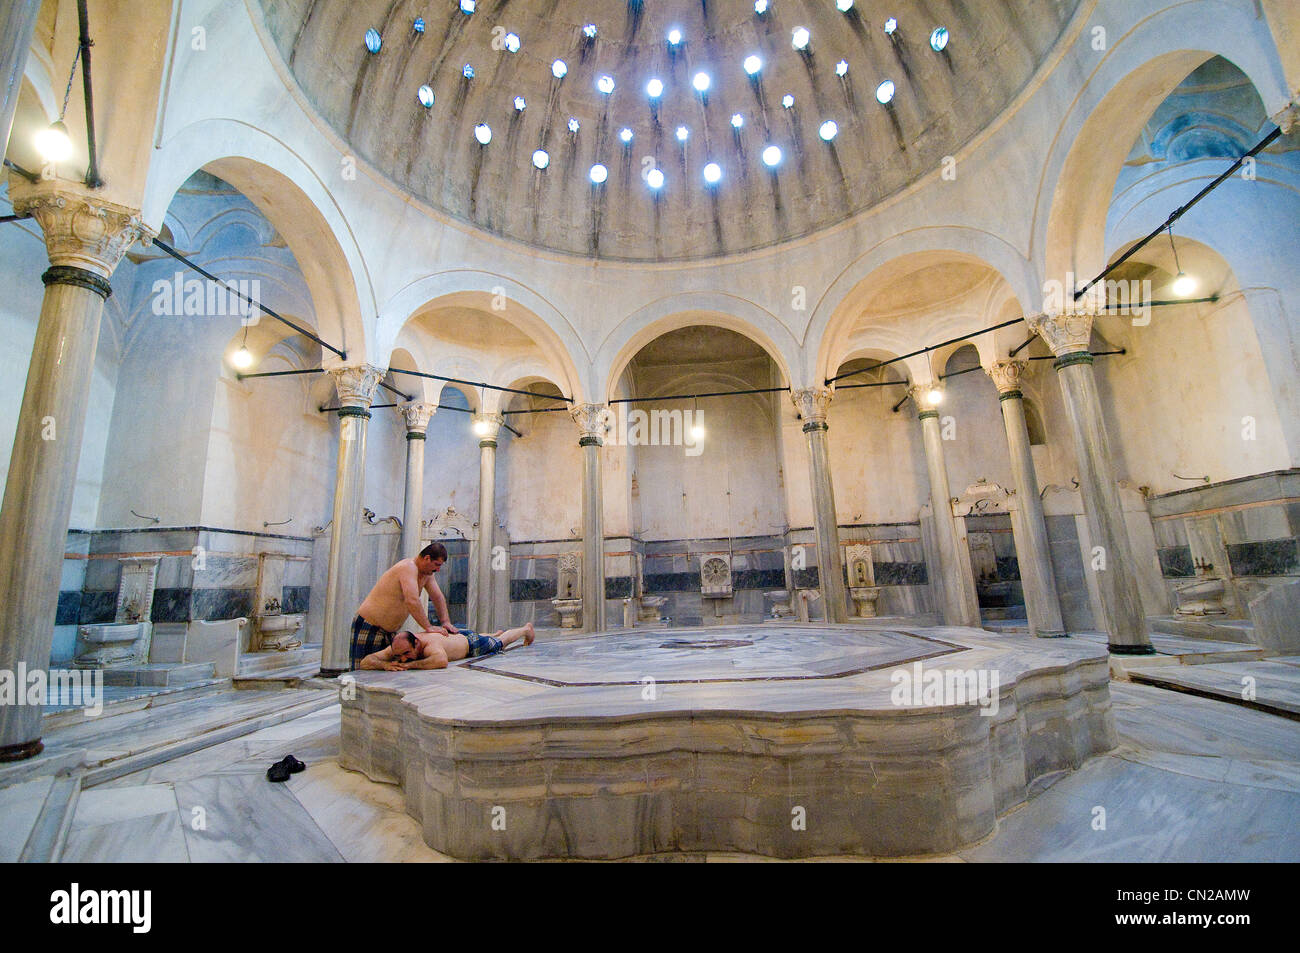 ca alo lu hamam in sultanahmet istanbul was built by sultan mahmud i stock photo 47380841 alamy. Black Bedroom Furniture Sets. Home Design Ideas